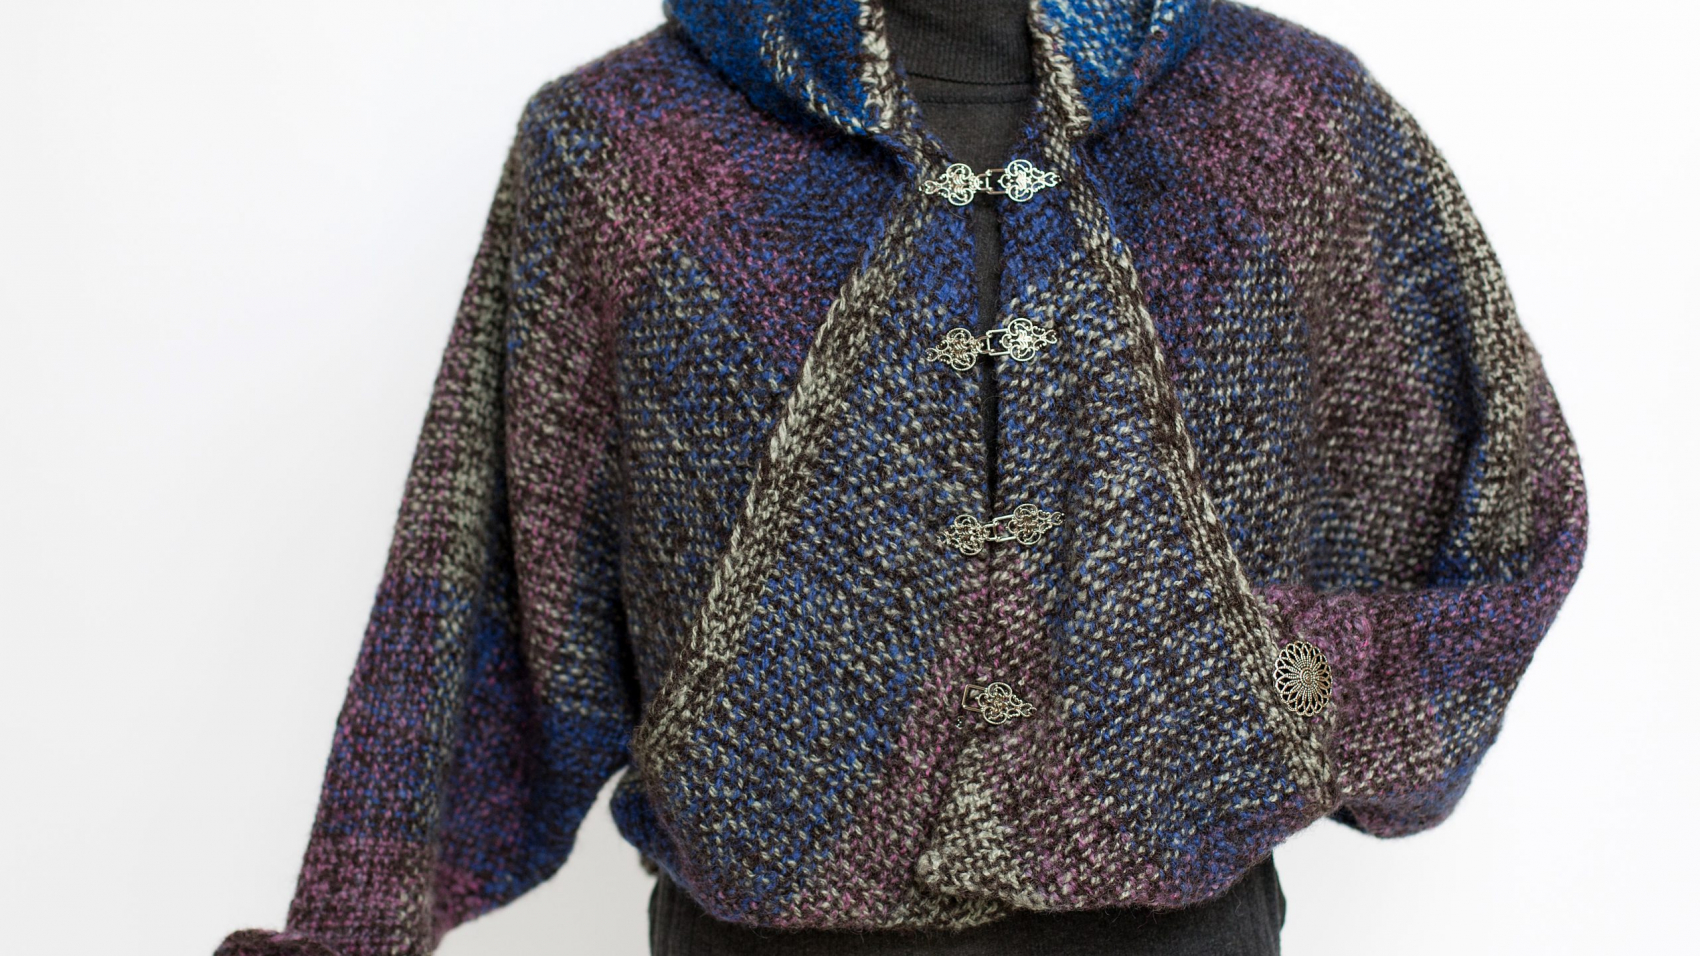 A woven wool jacket in blue, magenta, black and tan.